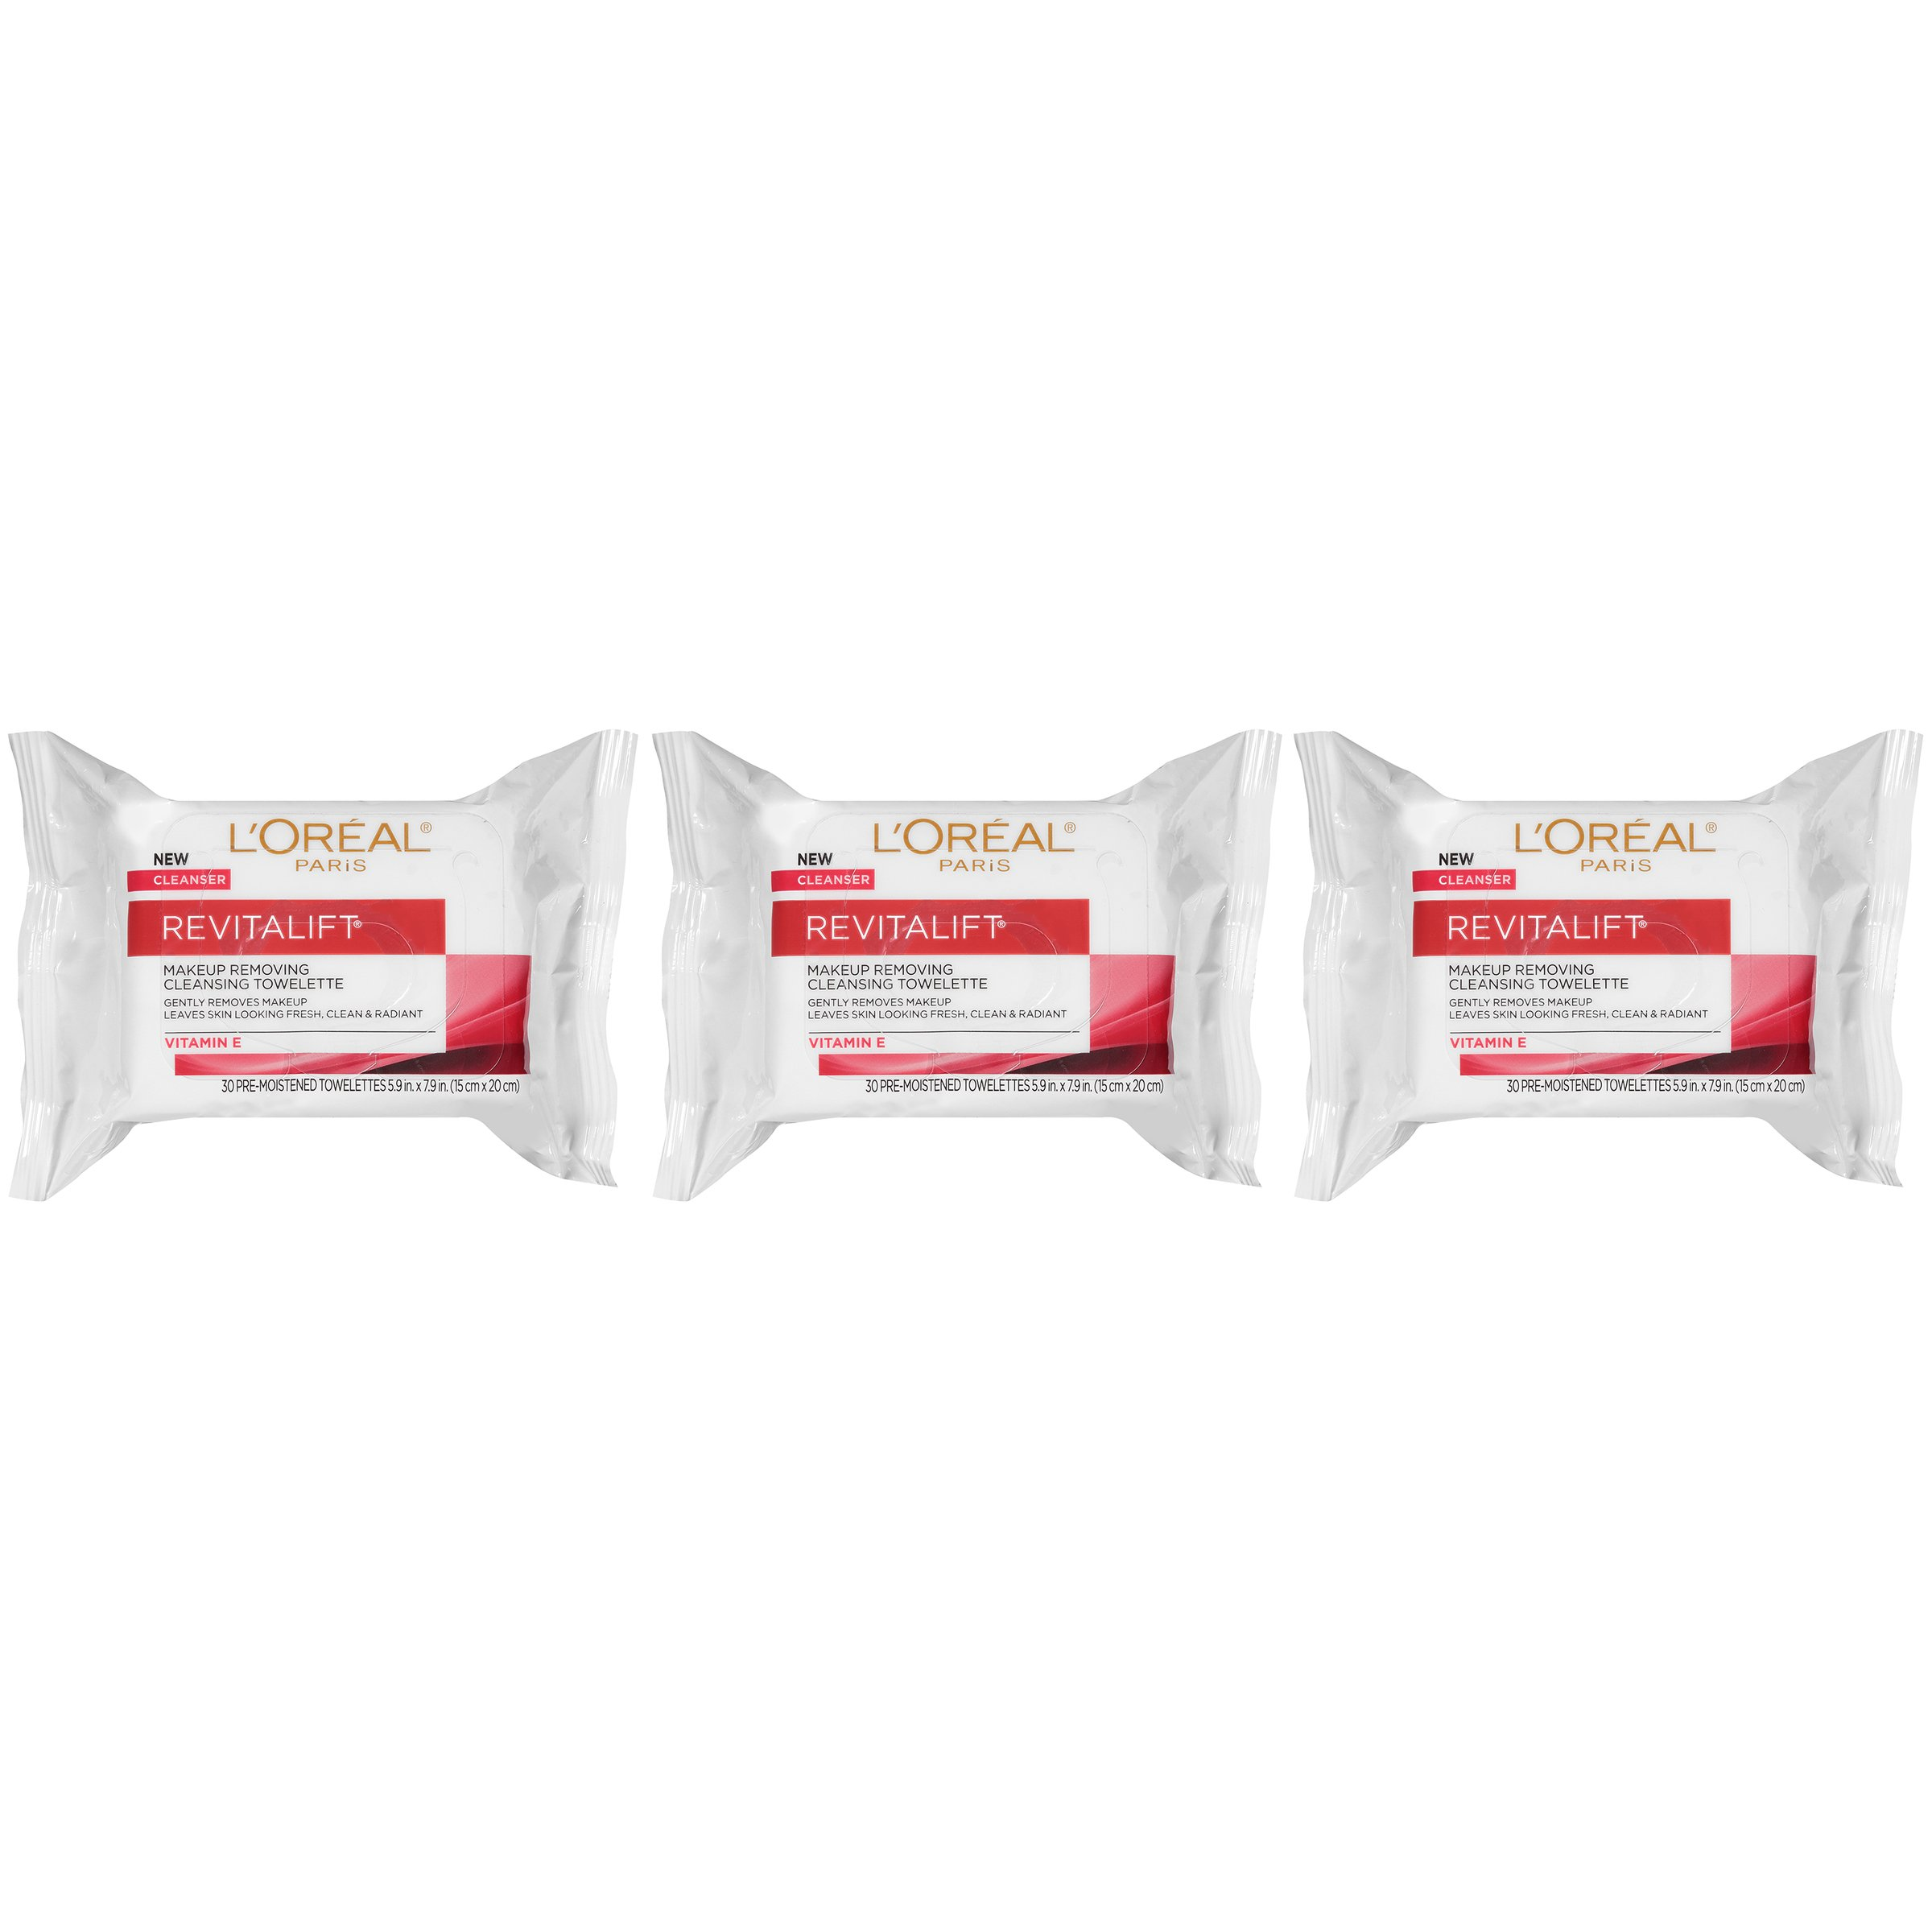 L'Oreal Paris Revitalift Makeup Removing Wipes with Vitamin E, Face Cleansing Towelettes, 30 Count, Pack of 3